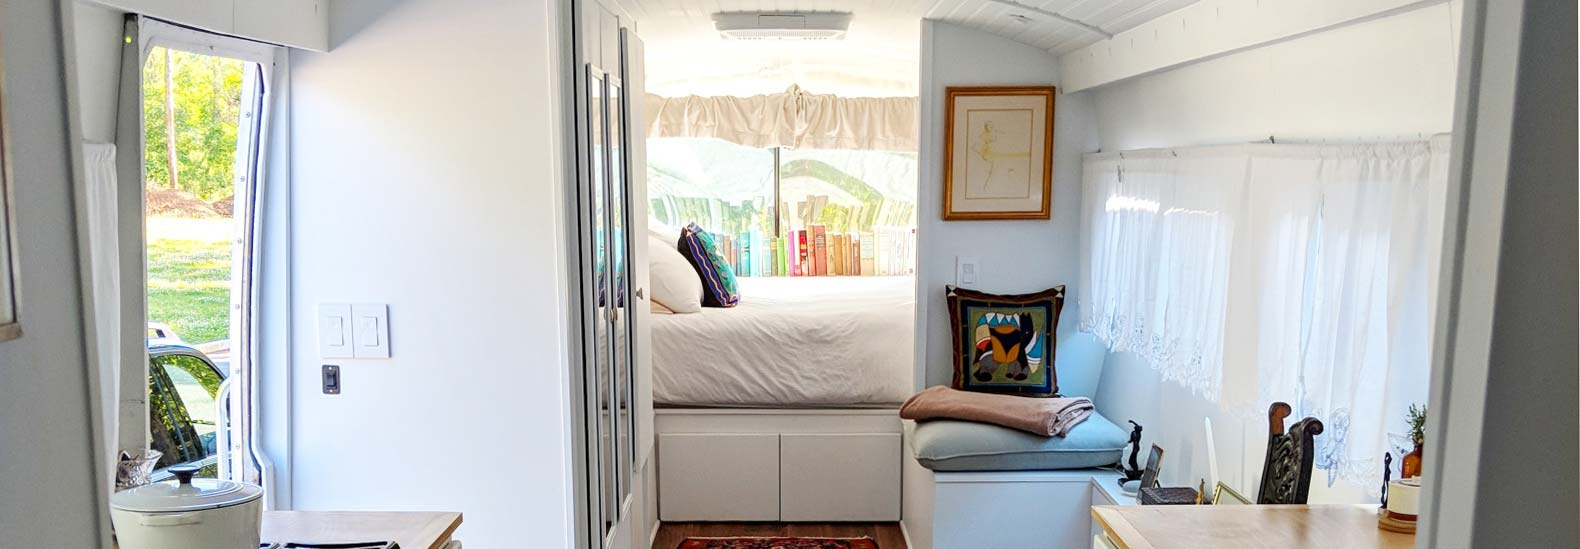 Old Greyhound Bus Converted Into Gorgeous Tiny House On Wheels